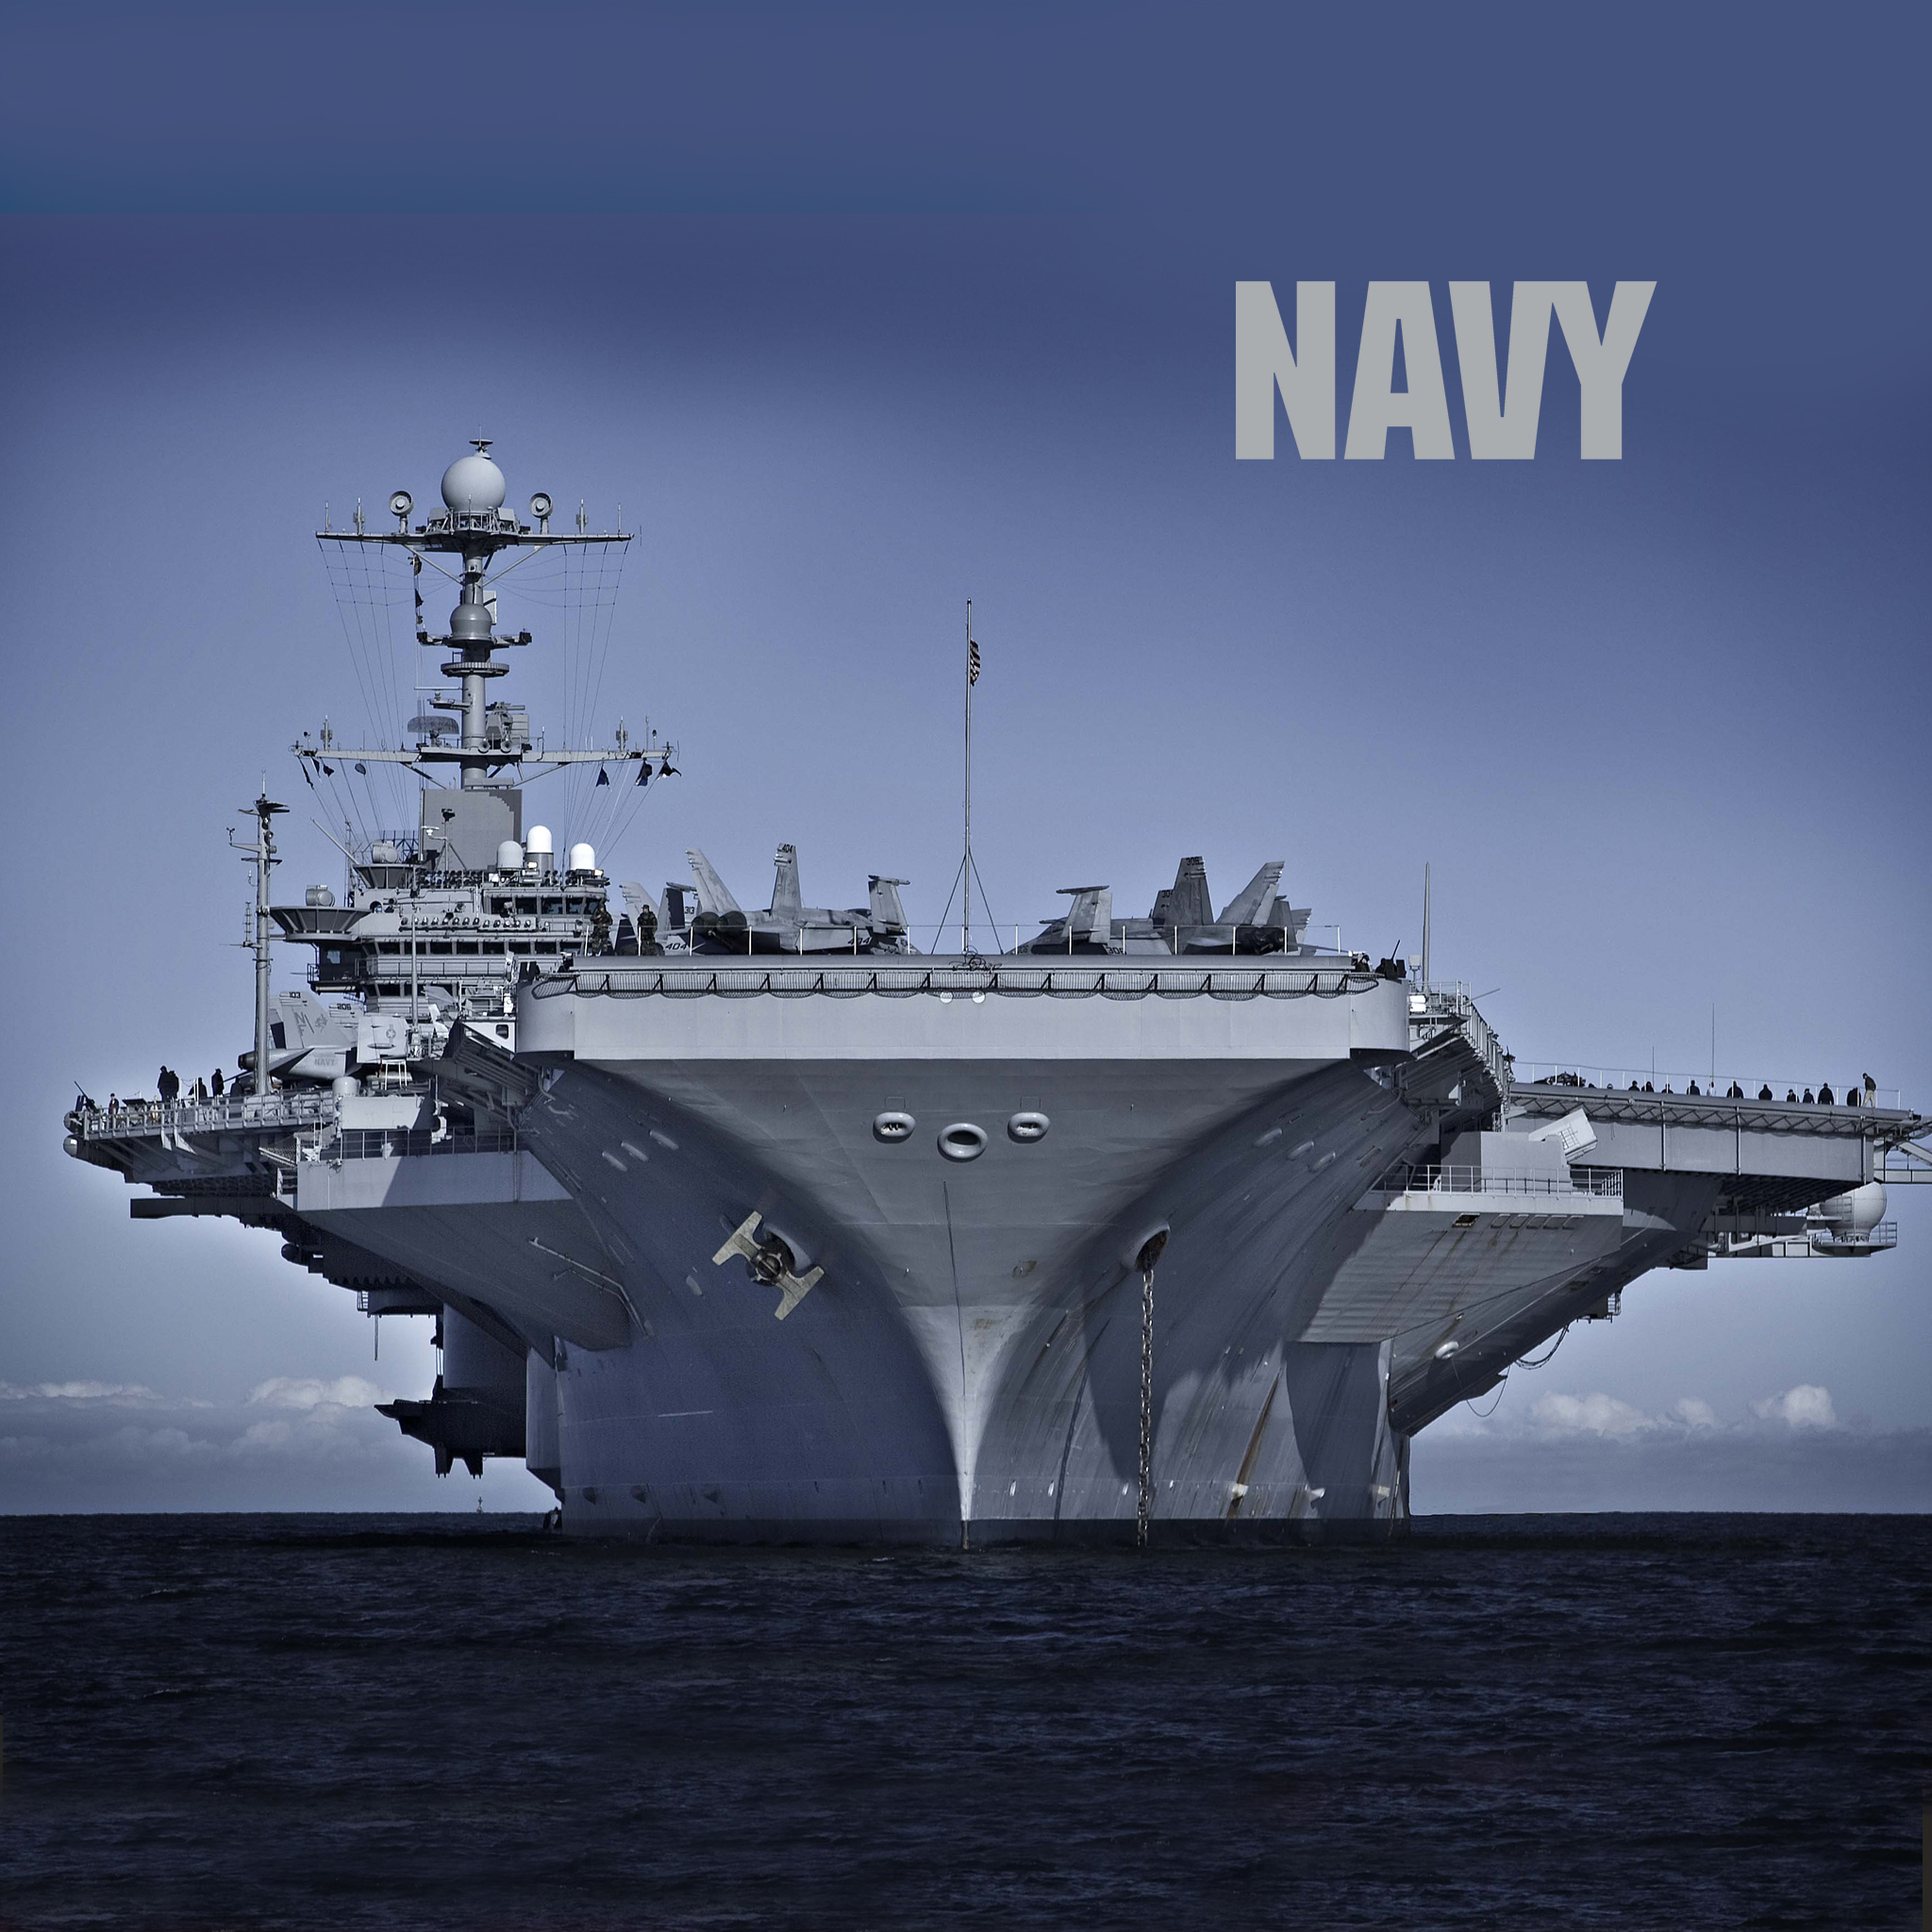 US Navy Wallpaper for your New iPad with Retina Display 2048x2048